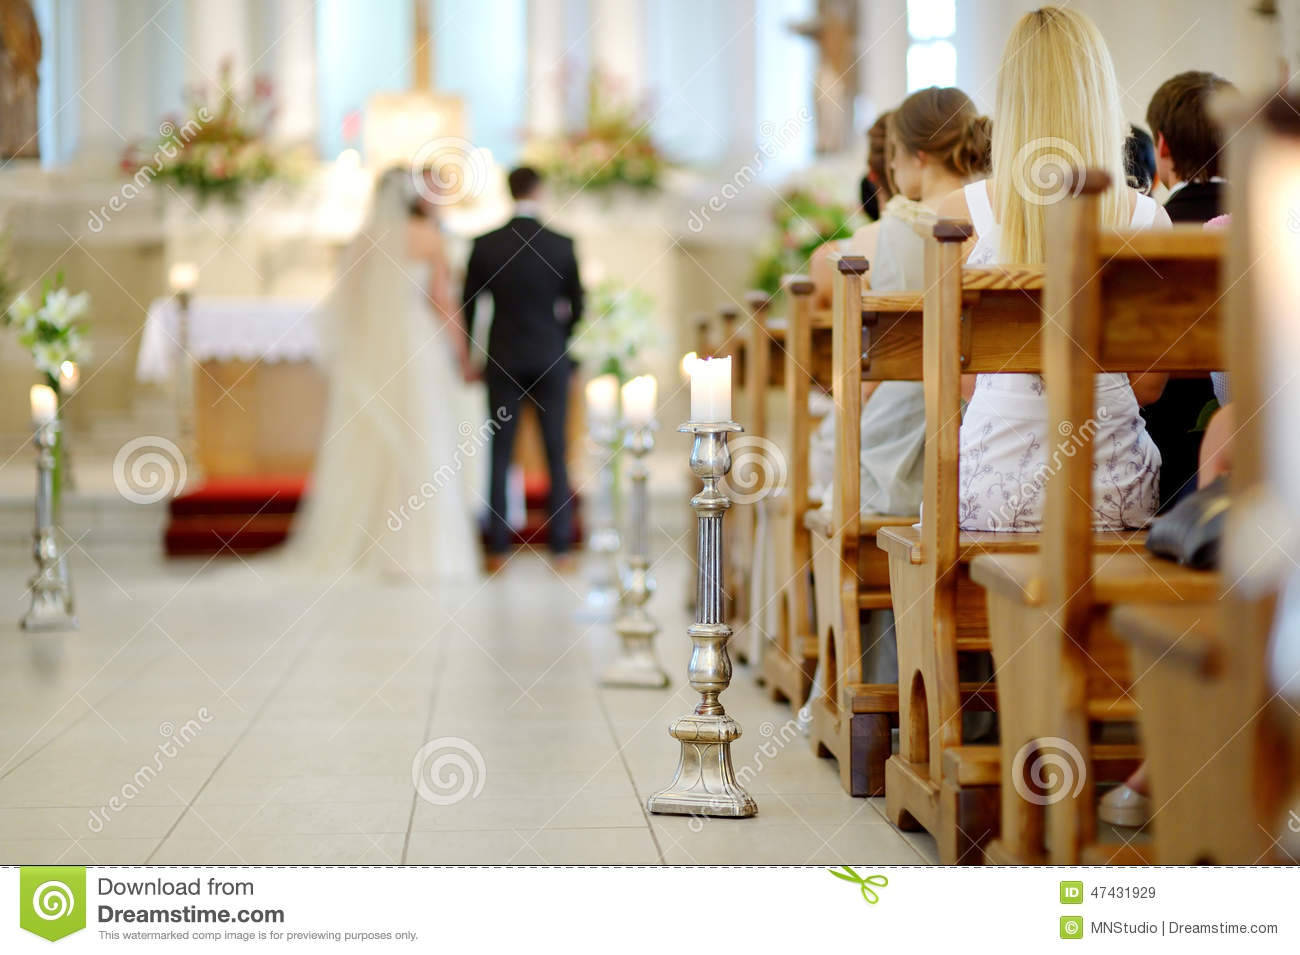 Wedding decoration church stock photos royalty free pictures beautiful candle wedding decoration in a church during wedding ceremony royalty free stock images junglespirit Choice Image